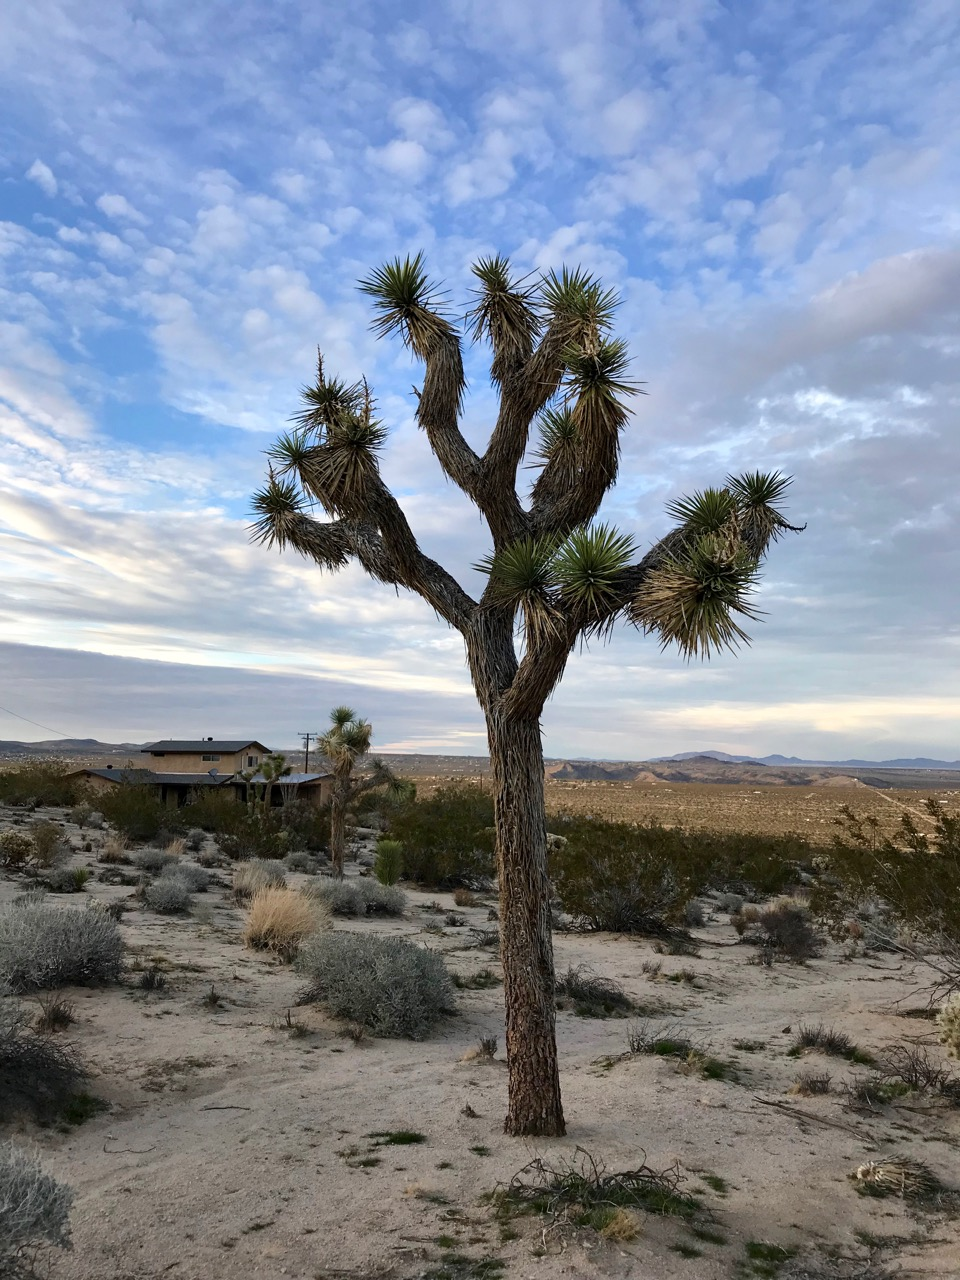 JOSHUA_tree_and_sky.jpg